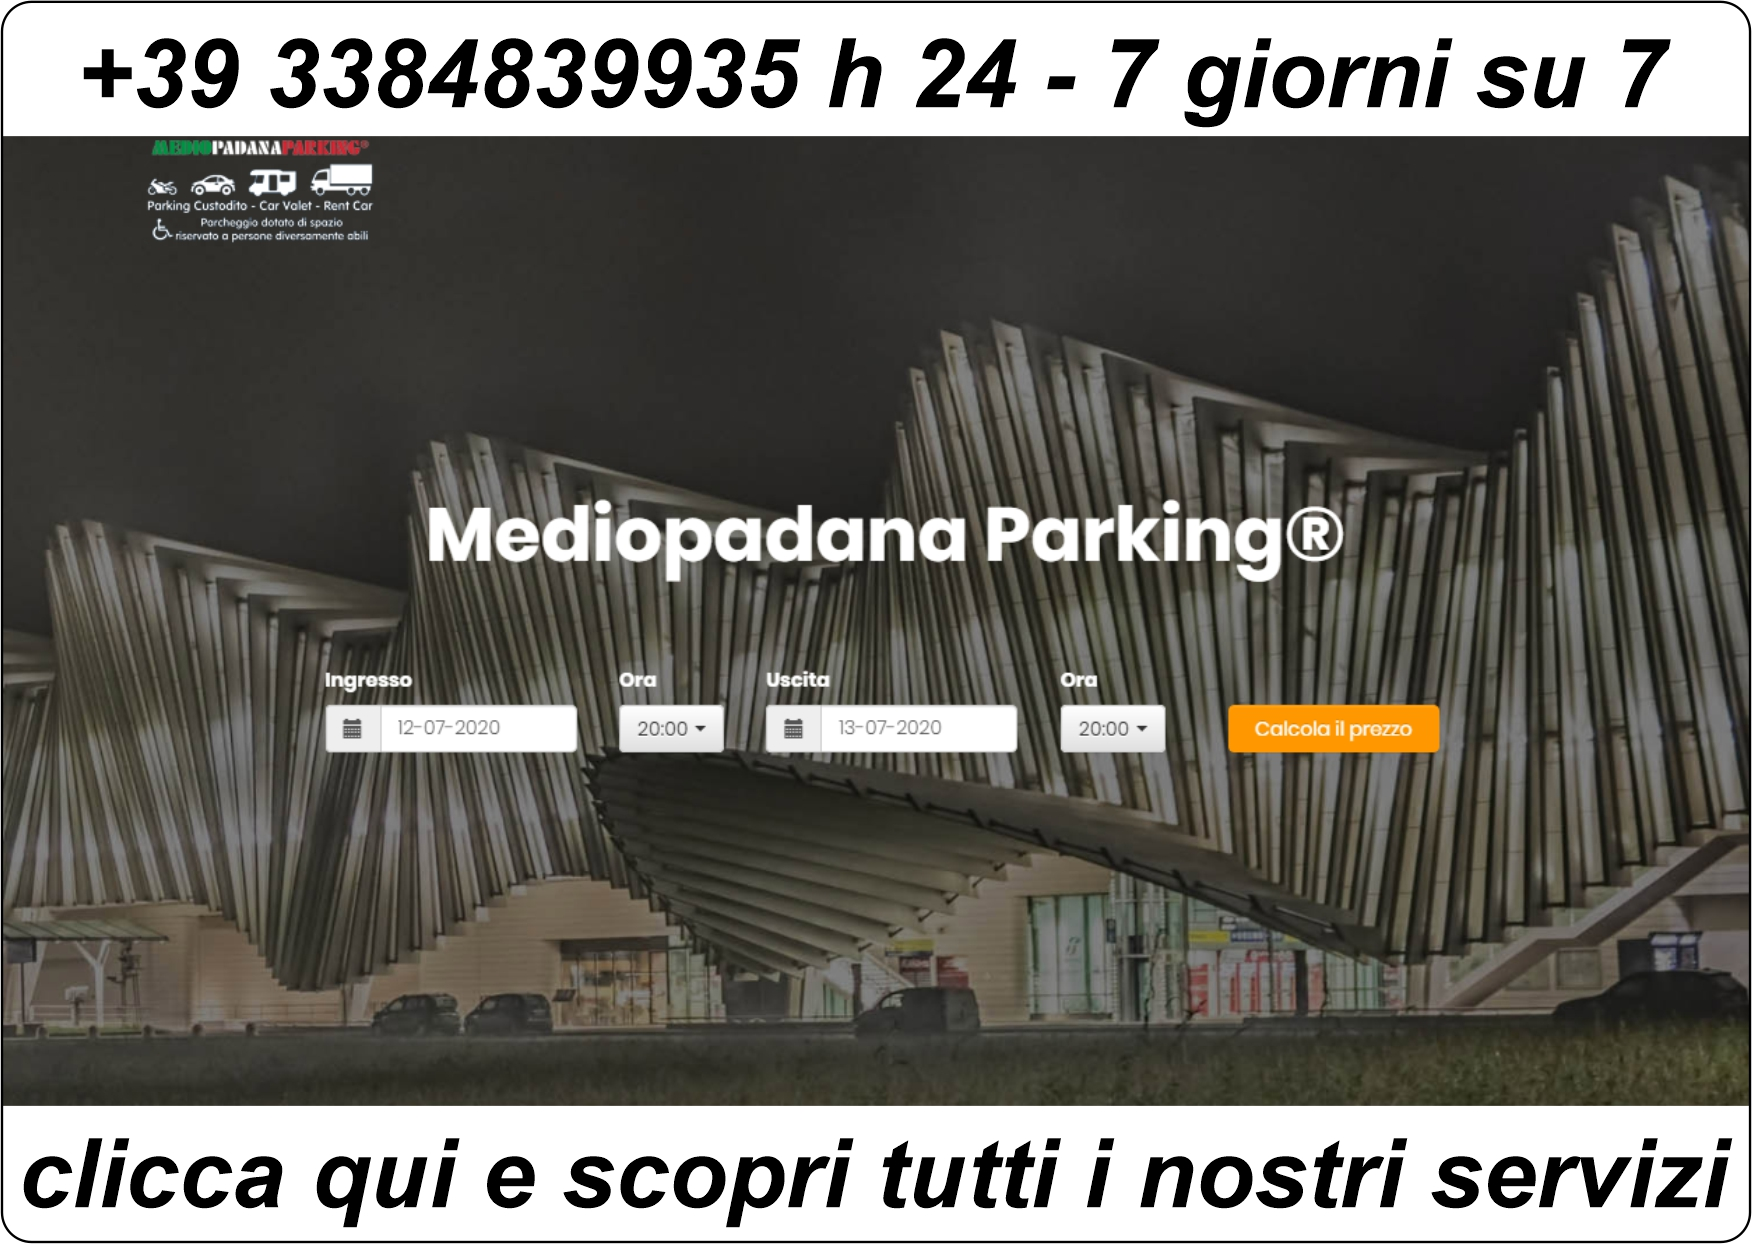 parking da mediopadanaservice